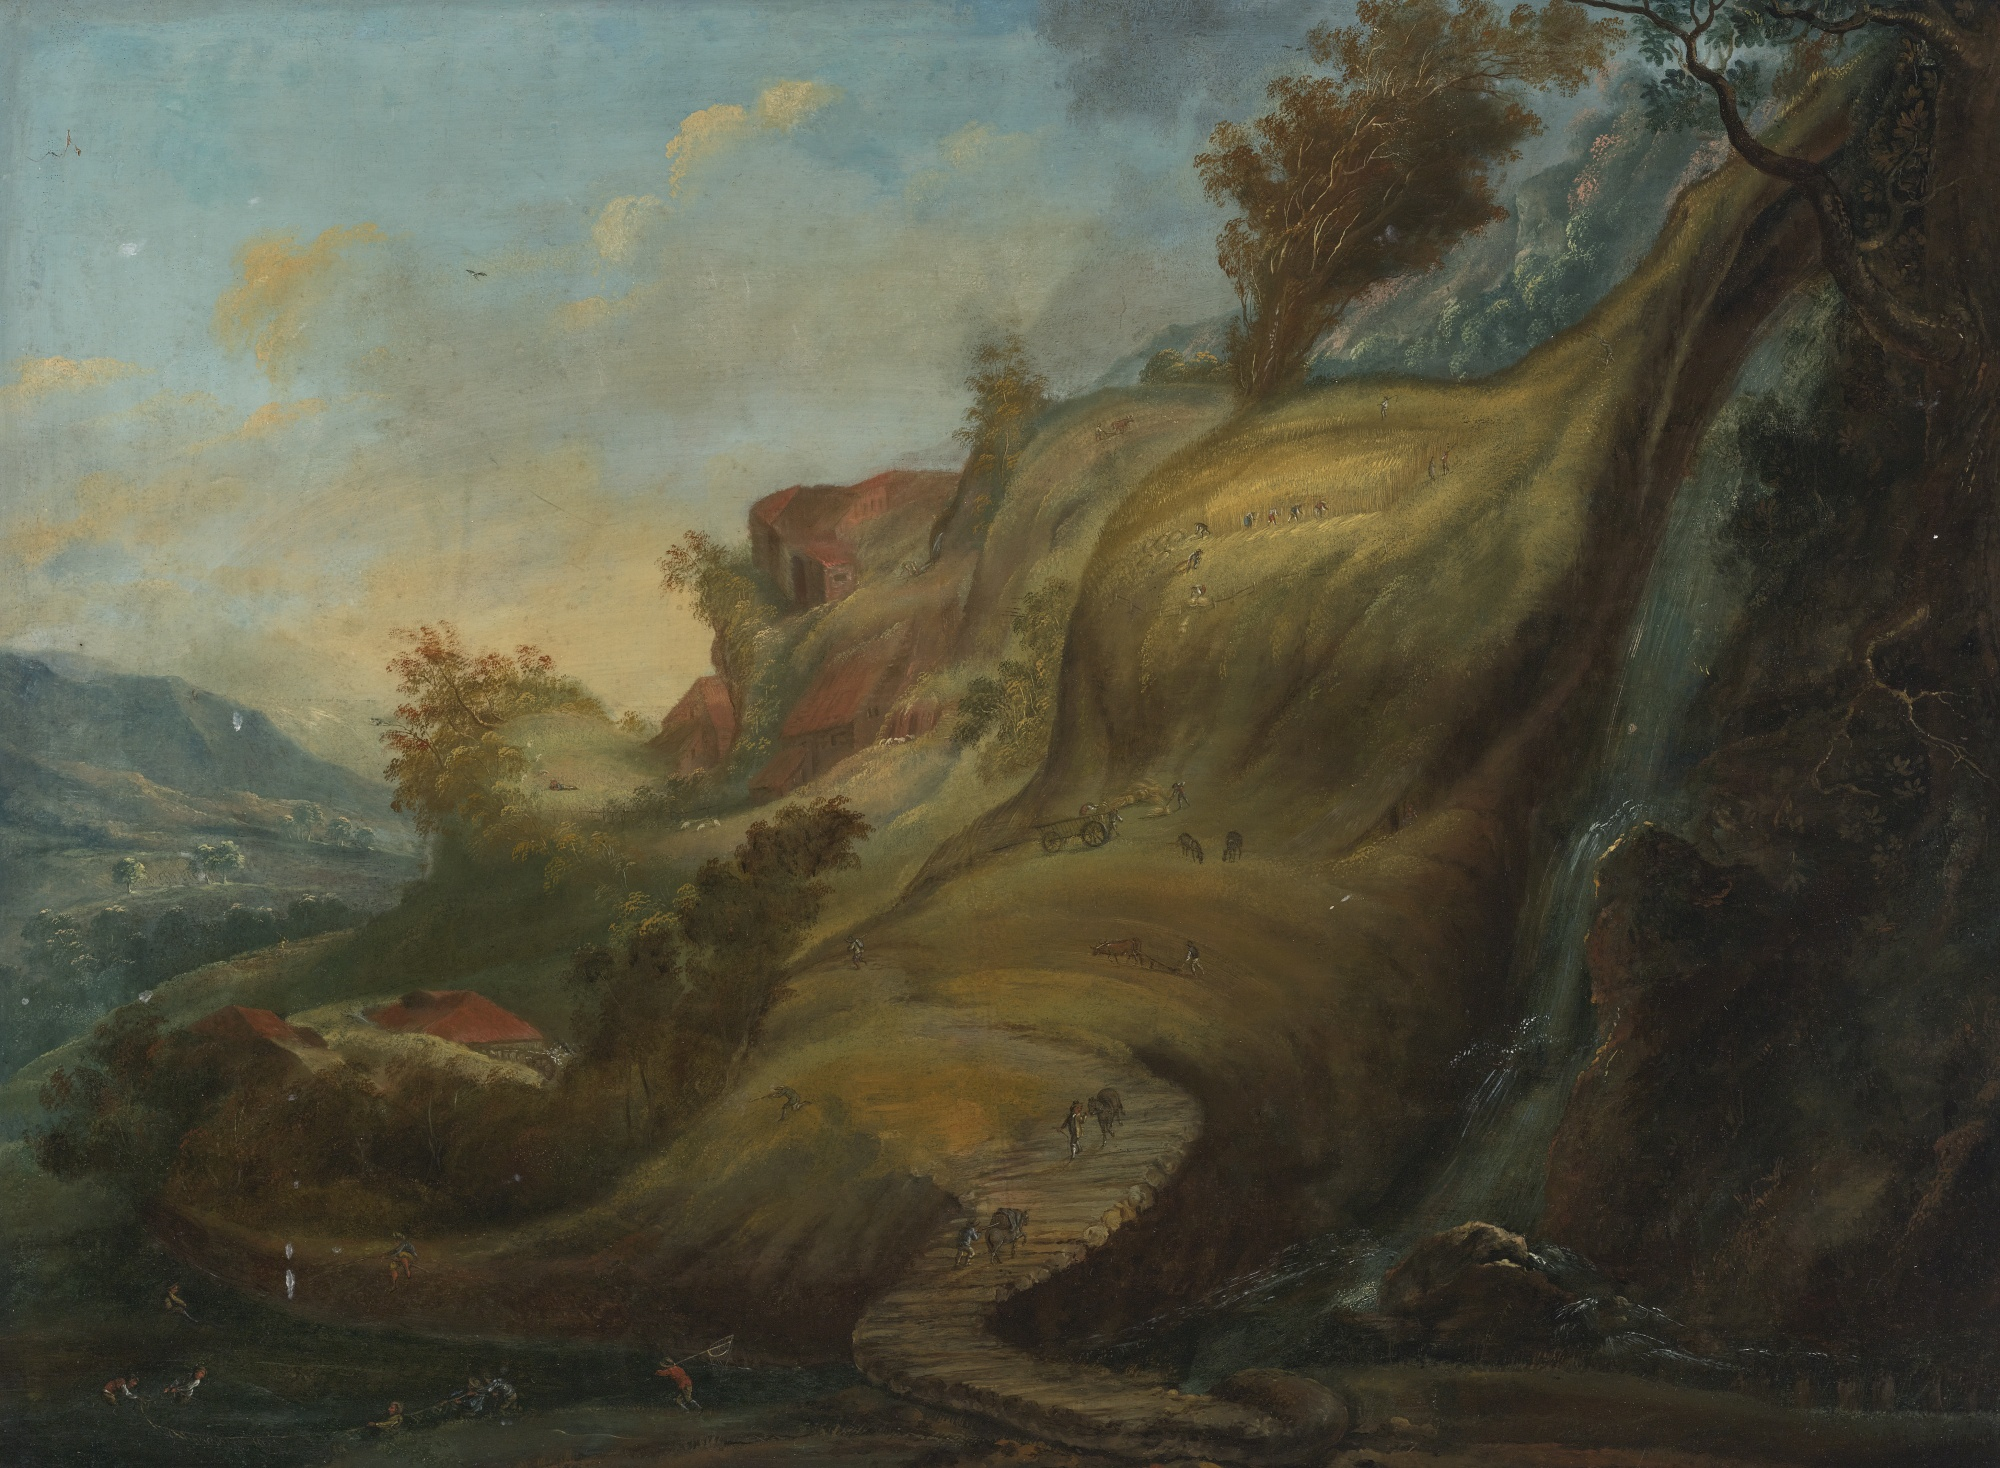 File:Flemish School, Early 17th Century A Hilly Landscape